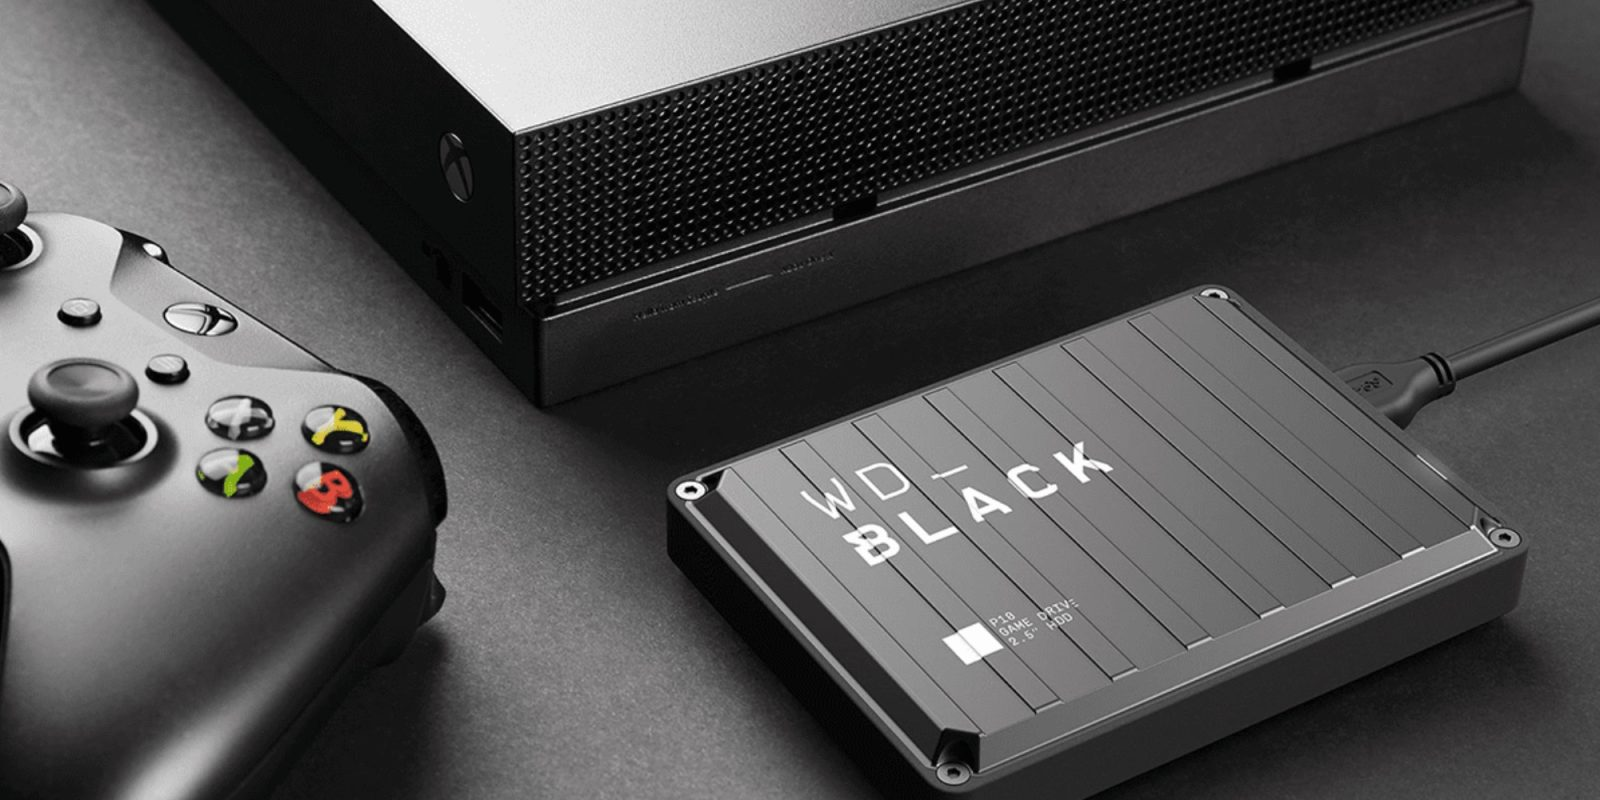 Western Digital unveils new 12TB Game Drive for Xbox One alongside SSDs, more